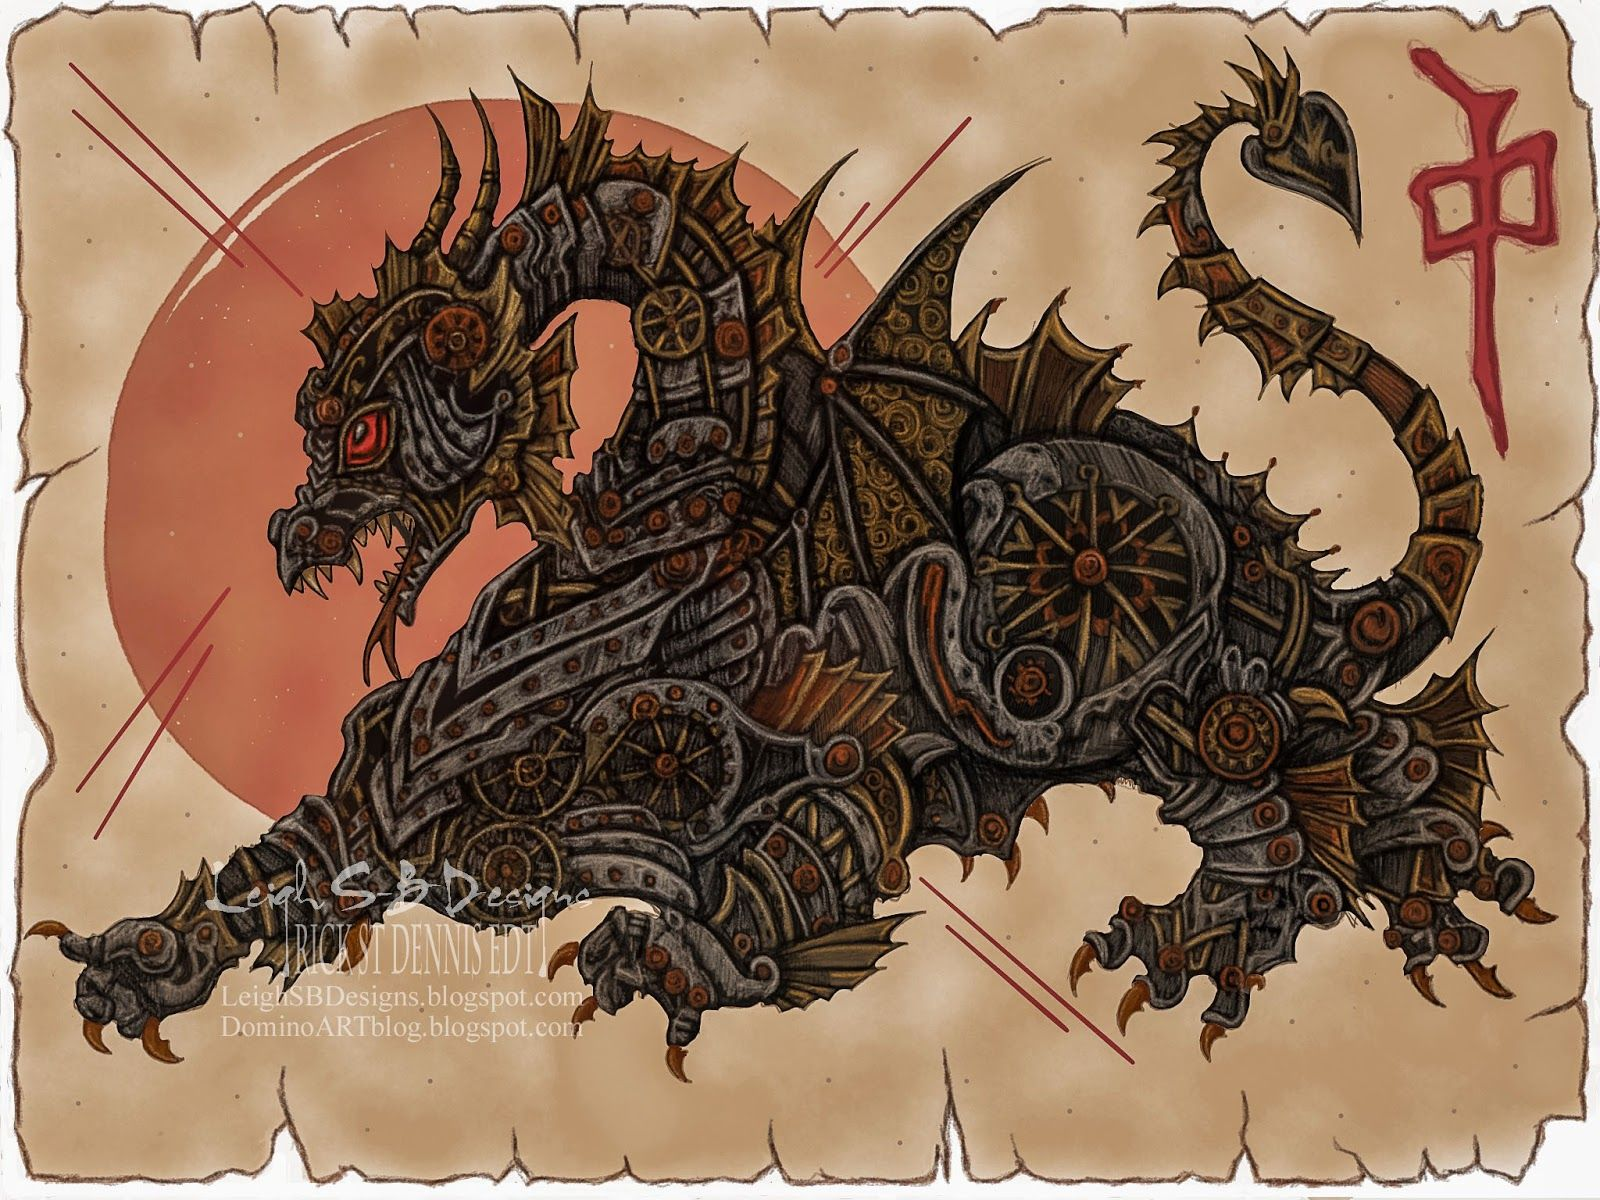 Leigh S B Designs Chinese Steampunk Dragon  Rick St Dennis